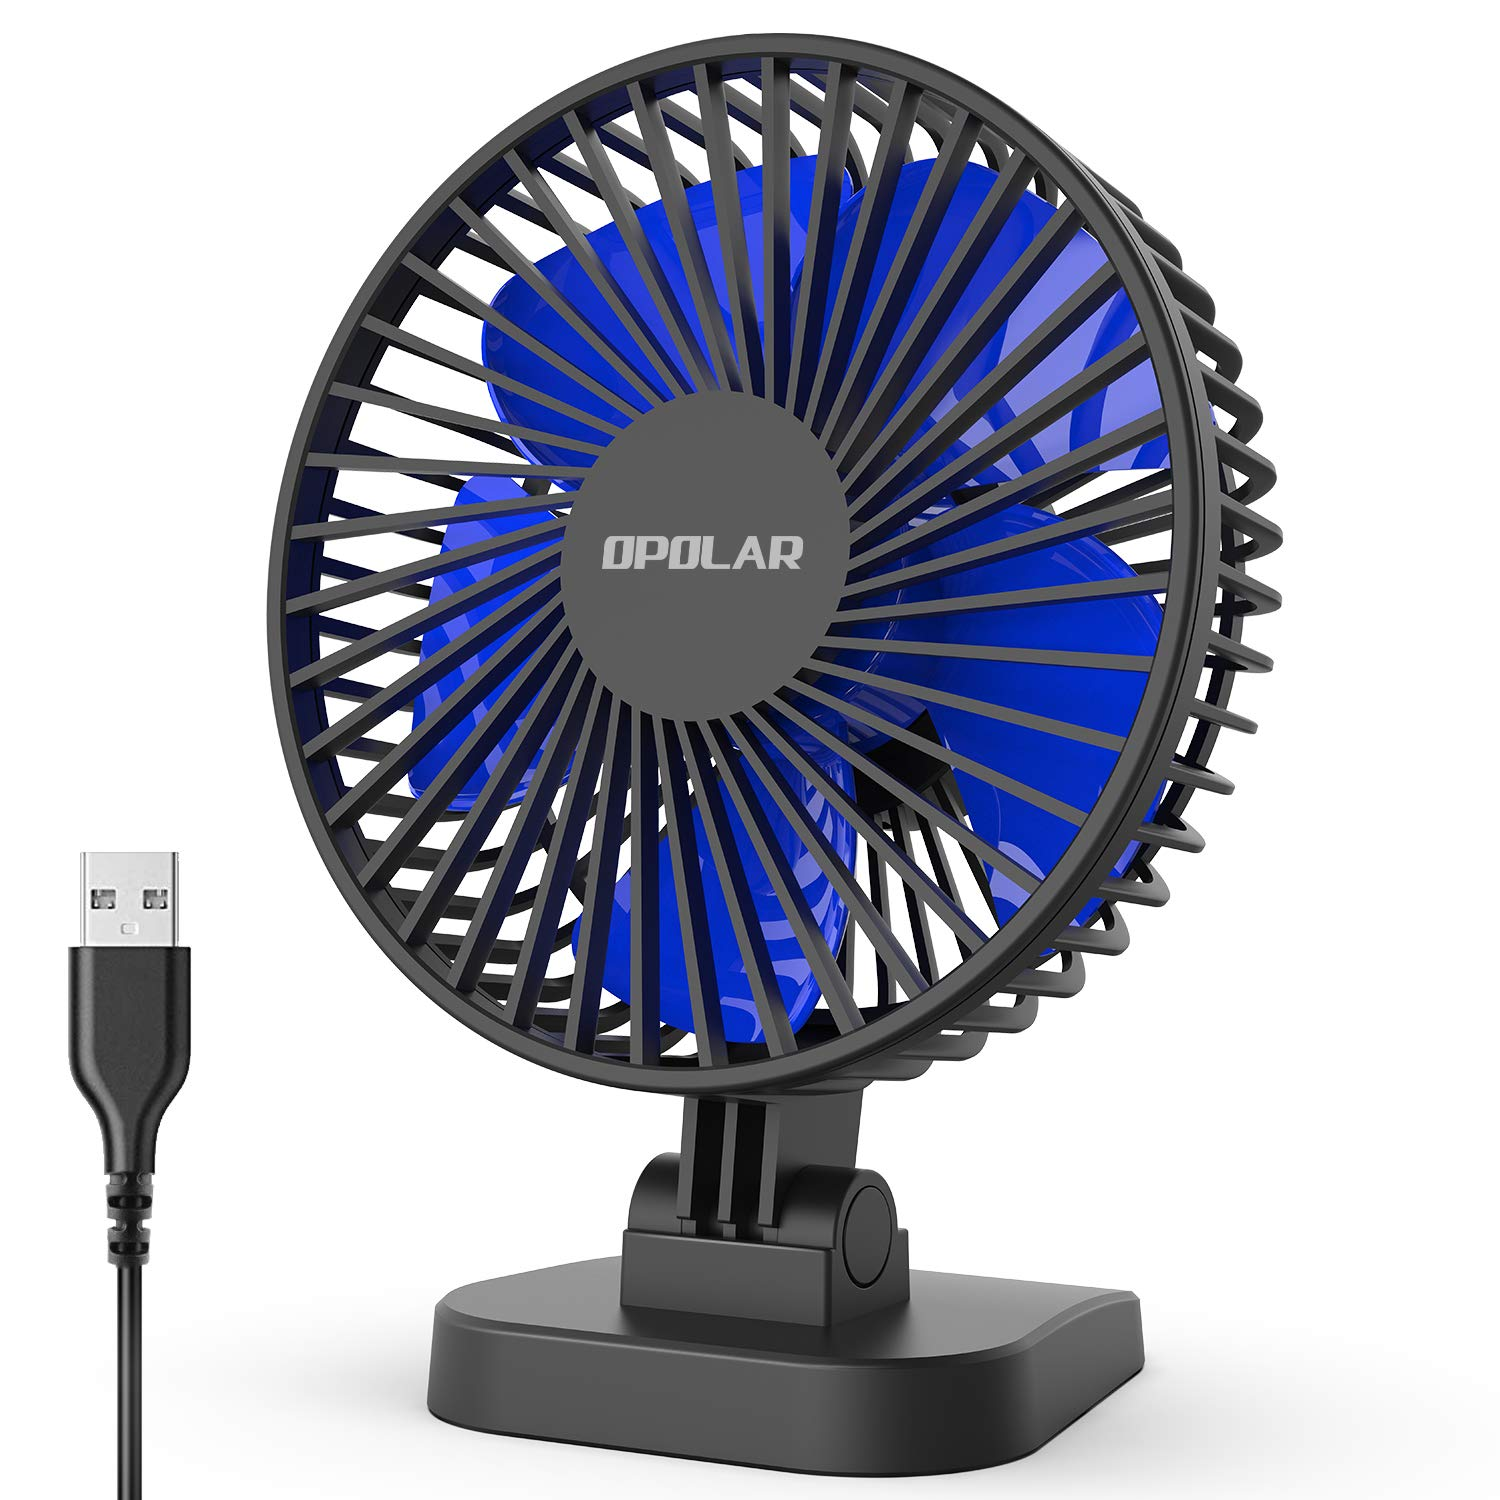 OPOLAR Mini USB Powered Desk Fan, Small Buy Mighty, 2019 New Quiet Portable Fan for Desktop Office Table, 40° Adjustment for Better Cooling, 3 Speeds, 4.9 ft Cord by OPOLAR